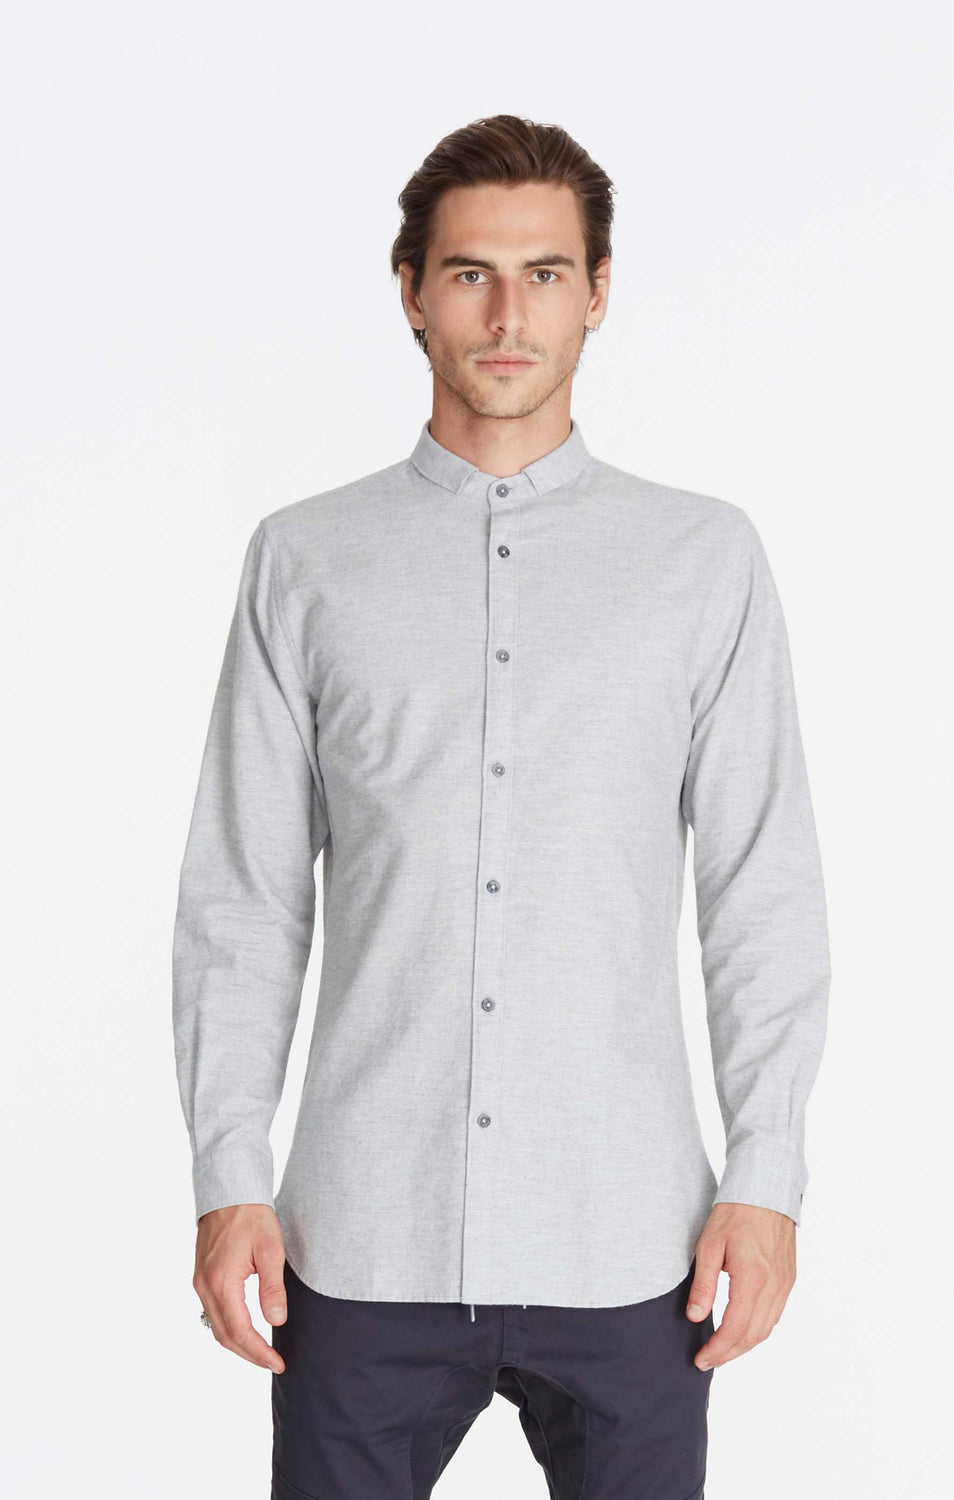 Tuck 7ft LS Shirt // Grey Melange